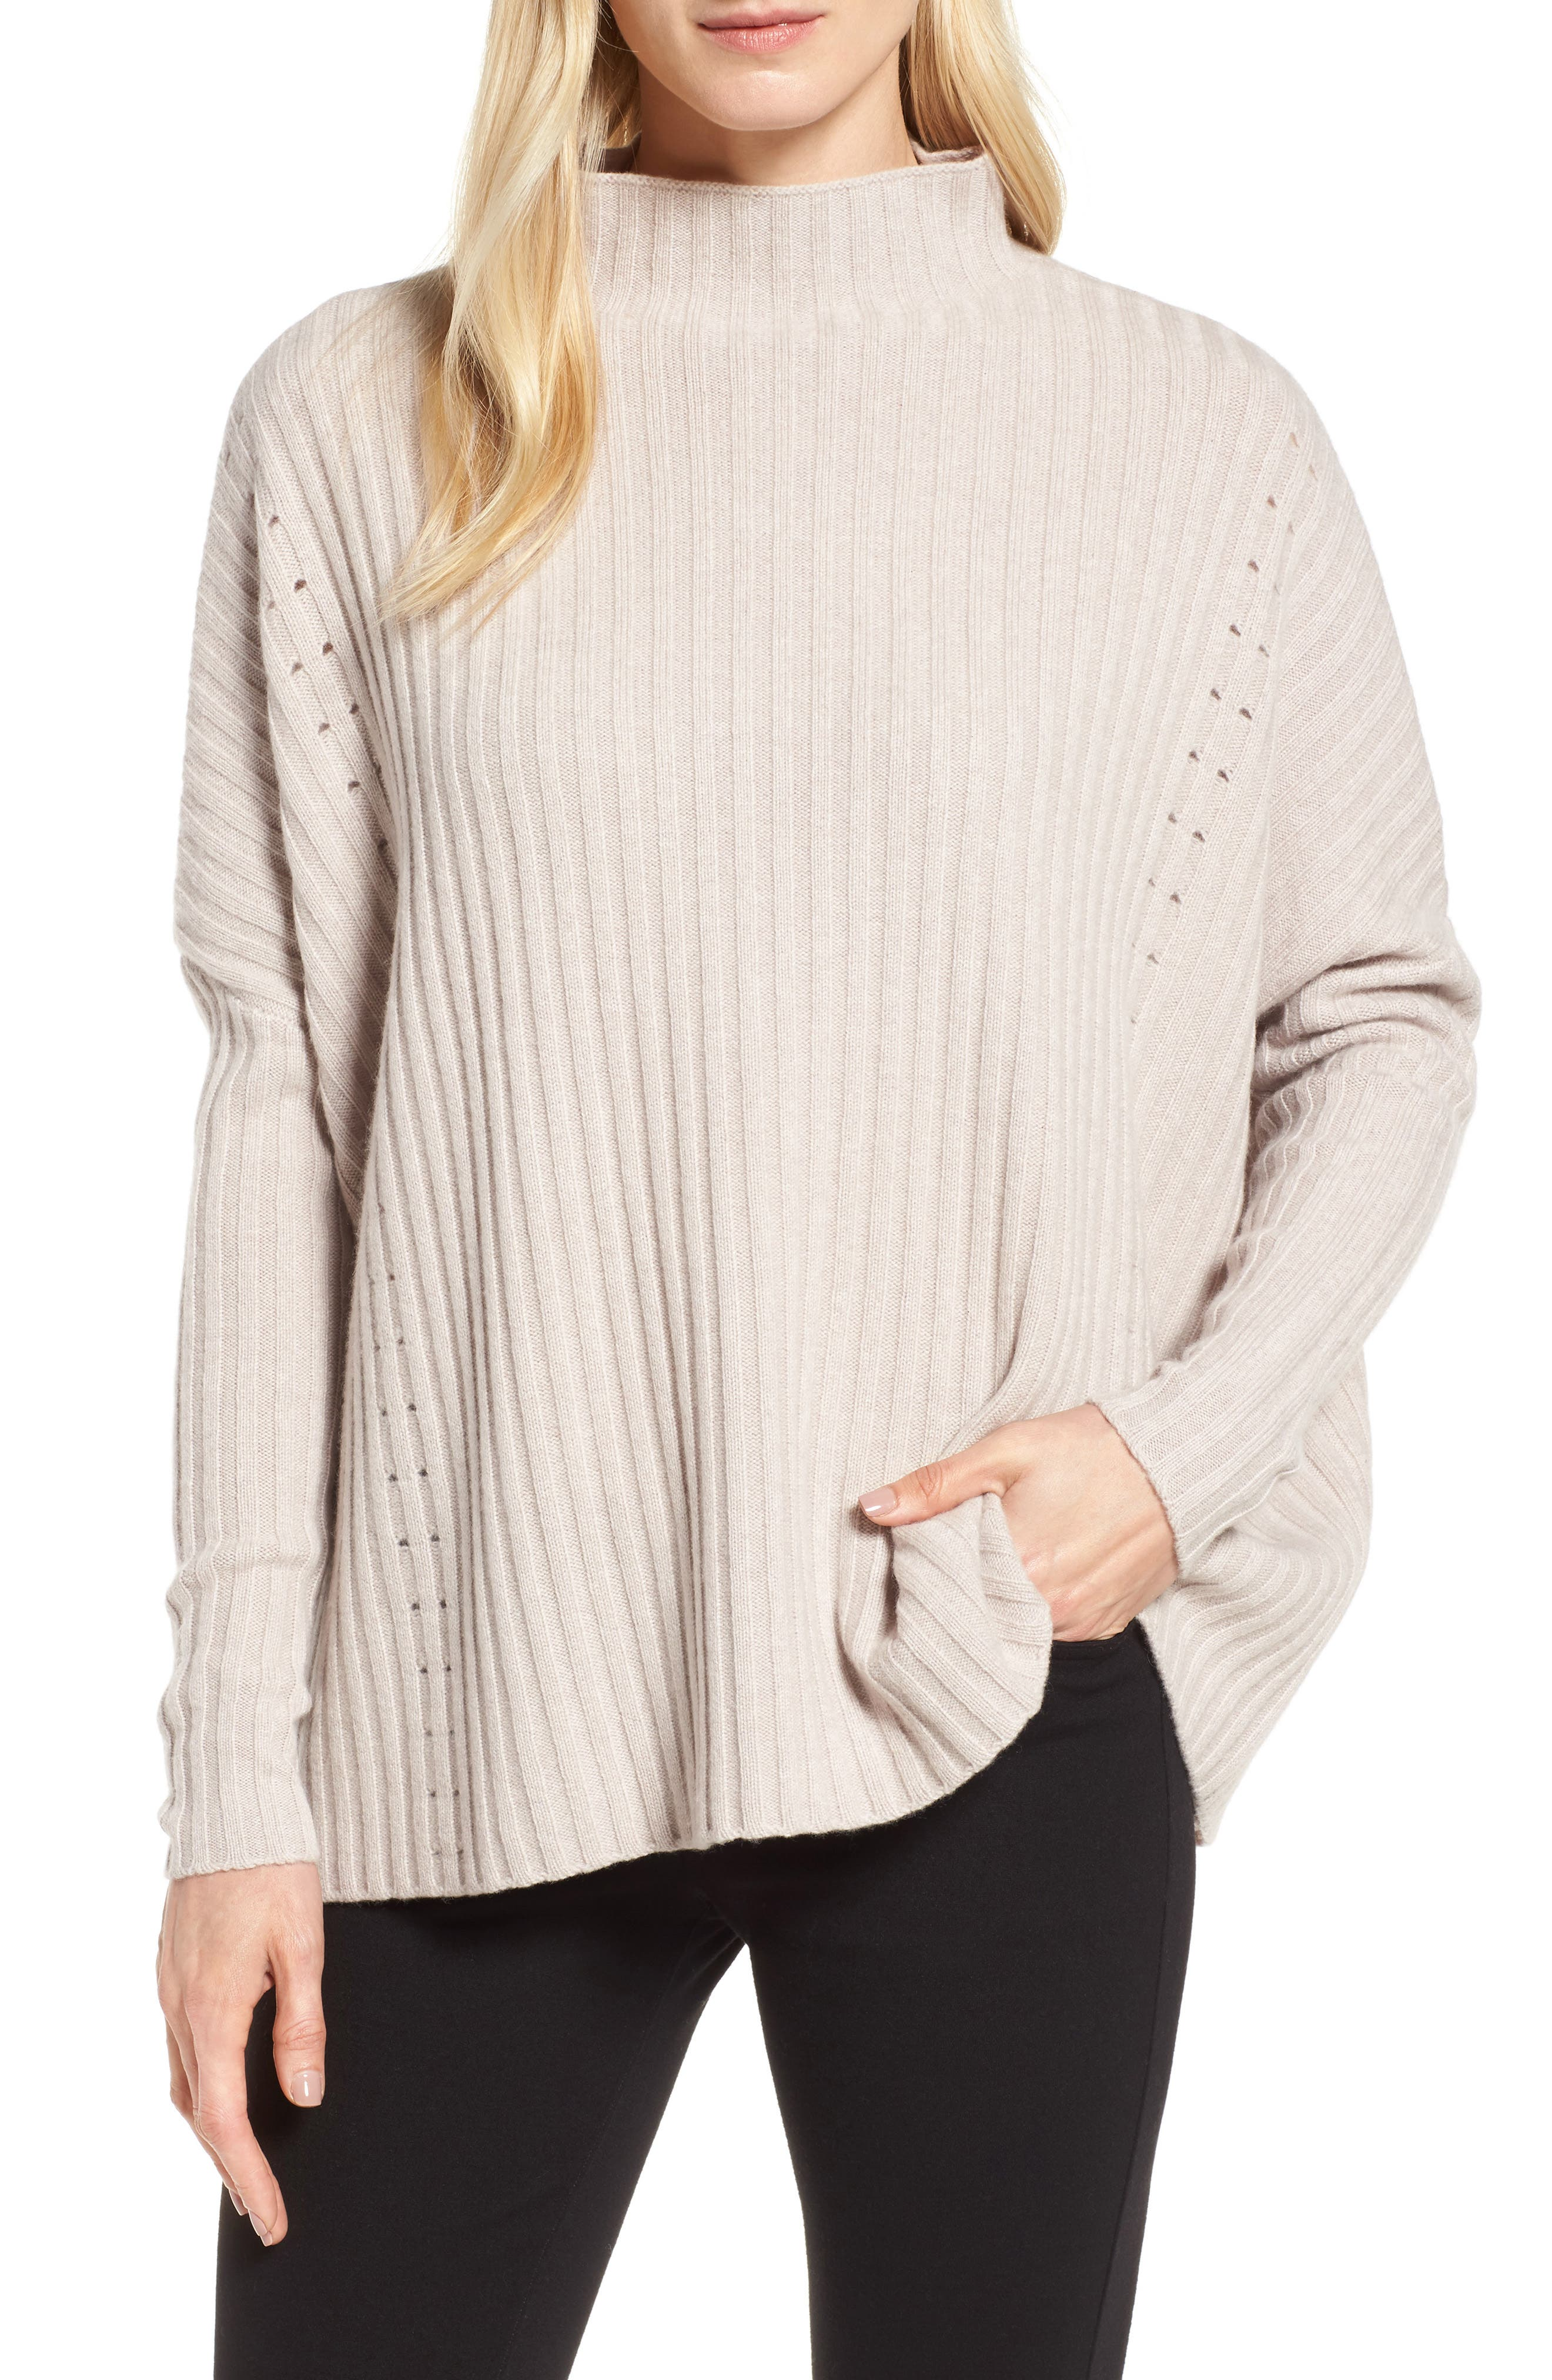 Alternate Image 1 Selected - Nordstrom Signature Boxy Ribbed Cashmere Sweater